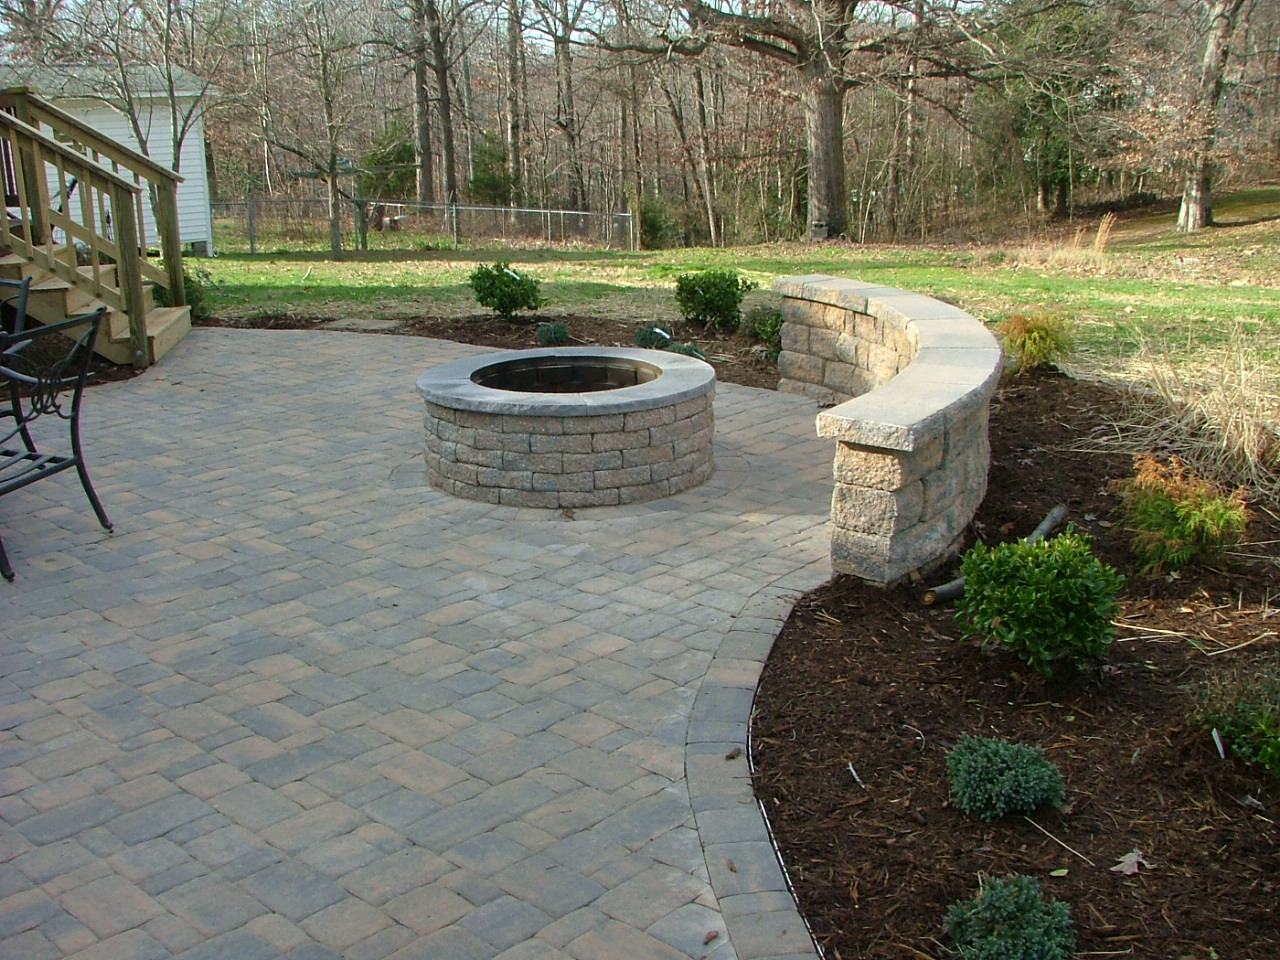 cu paver patio staffod virginia - Brick Paver Patio Designs